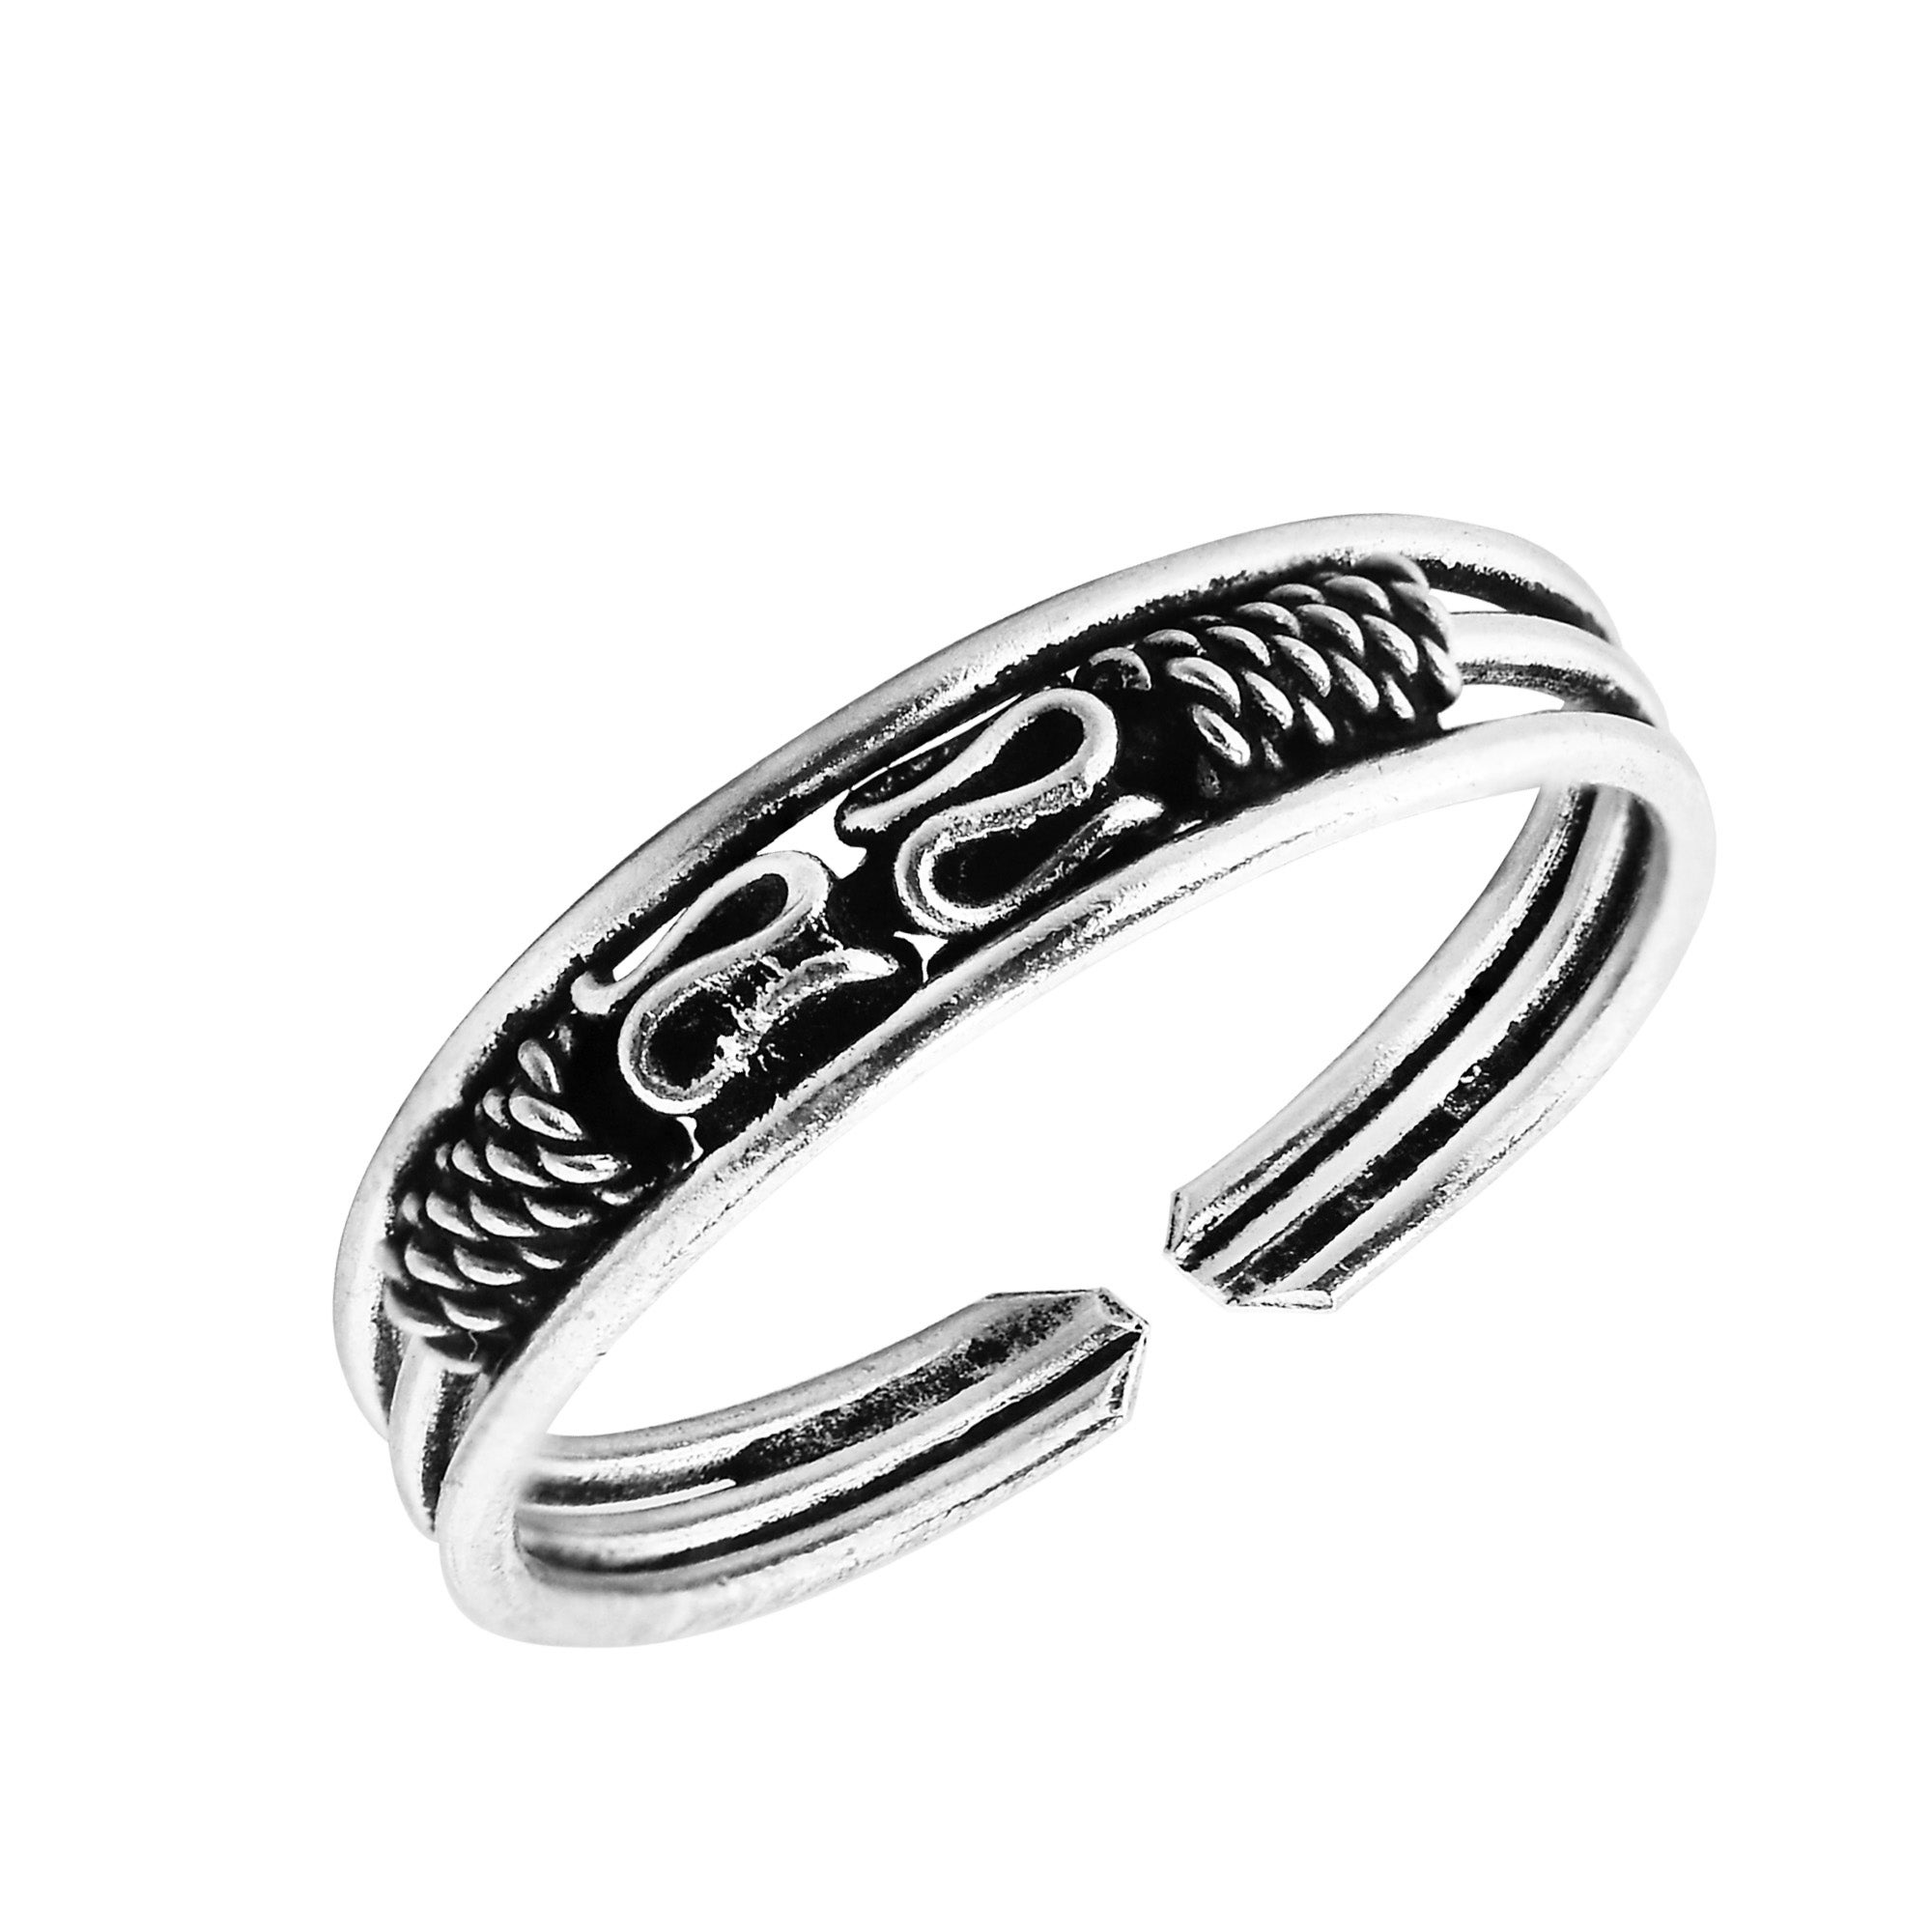 Twist with 4mm Balls Toe Ring 925 Sterling Silver